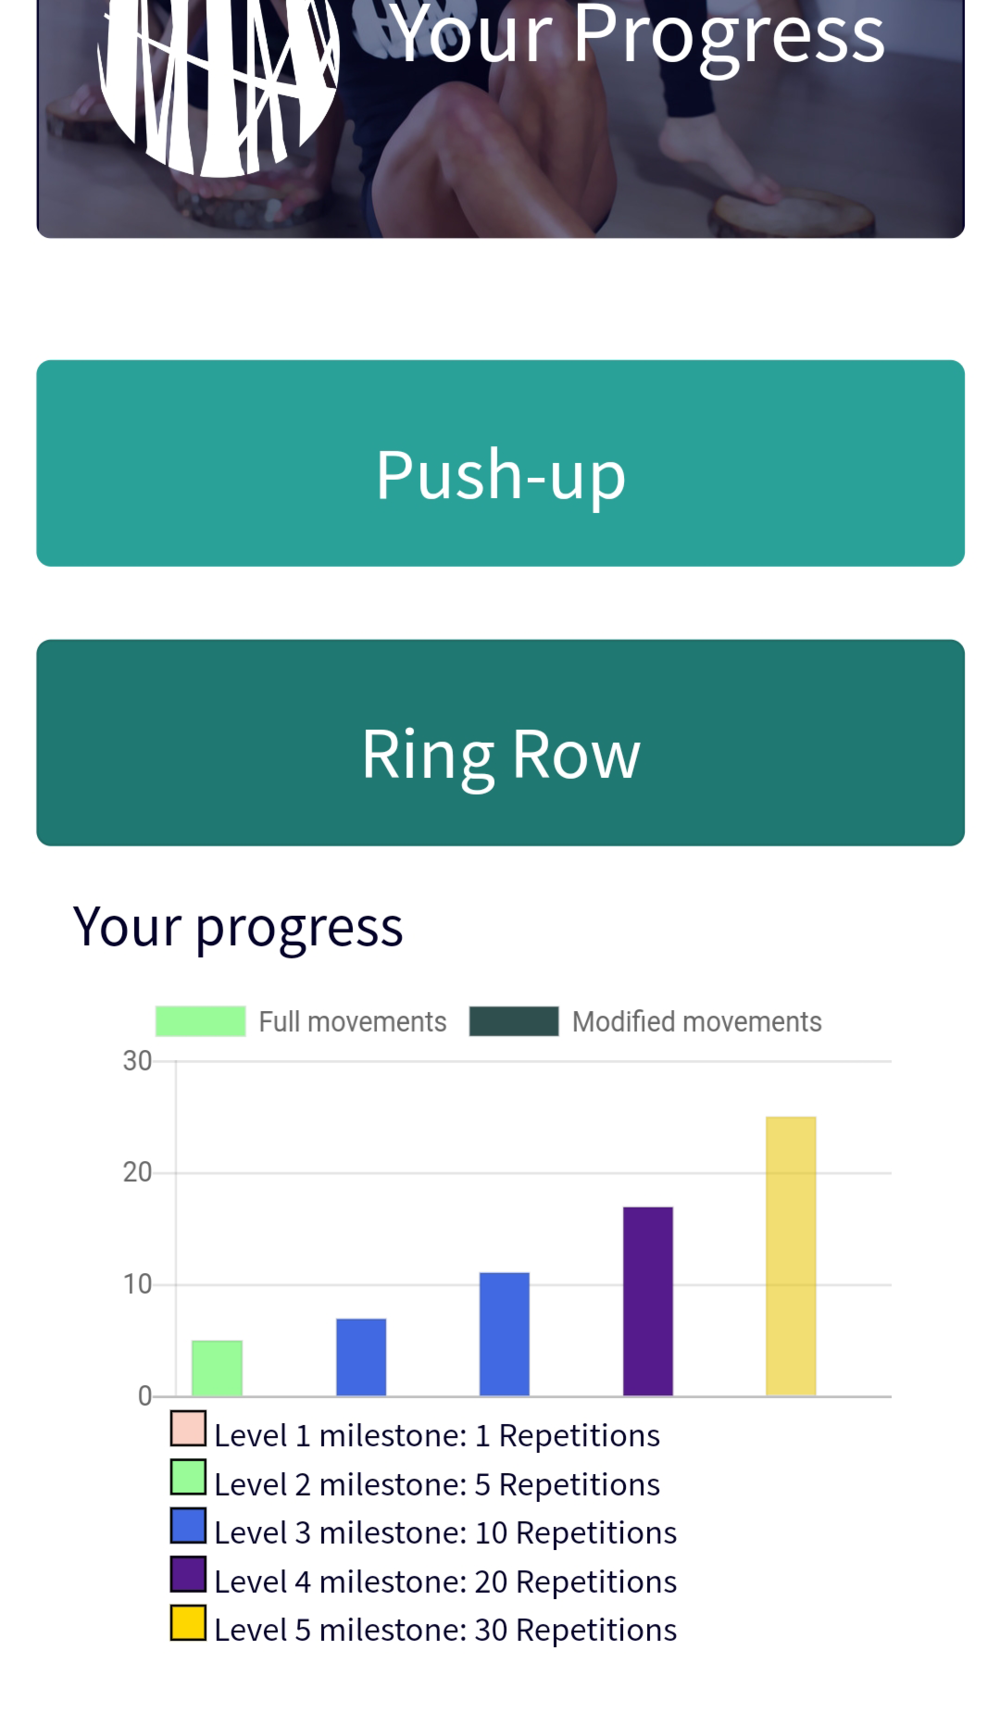 Get at-a-glance information on your progress by seeing graphed versions of your work outs, with colour bands representing milestone levels.